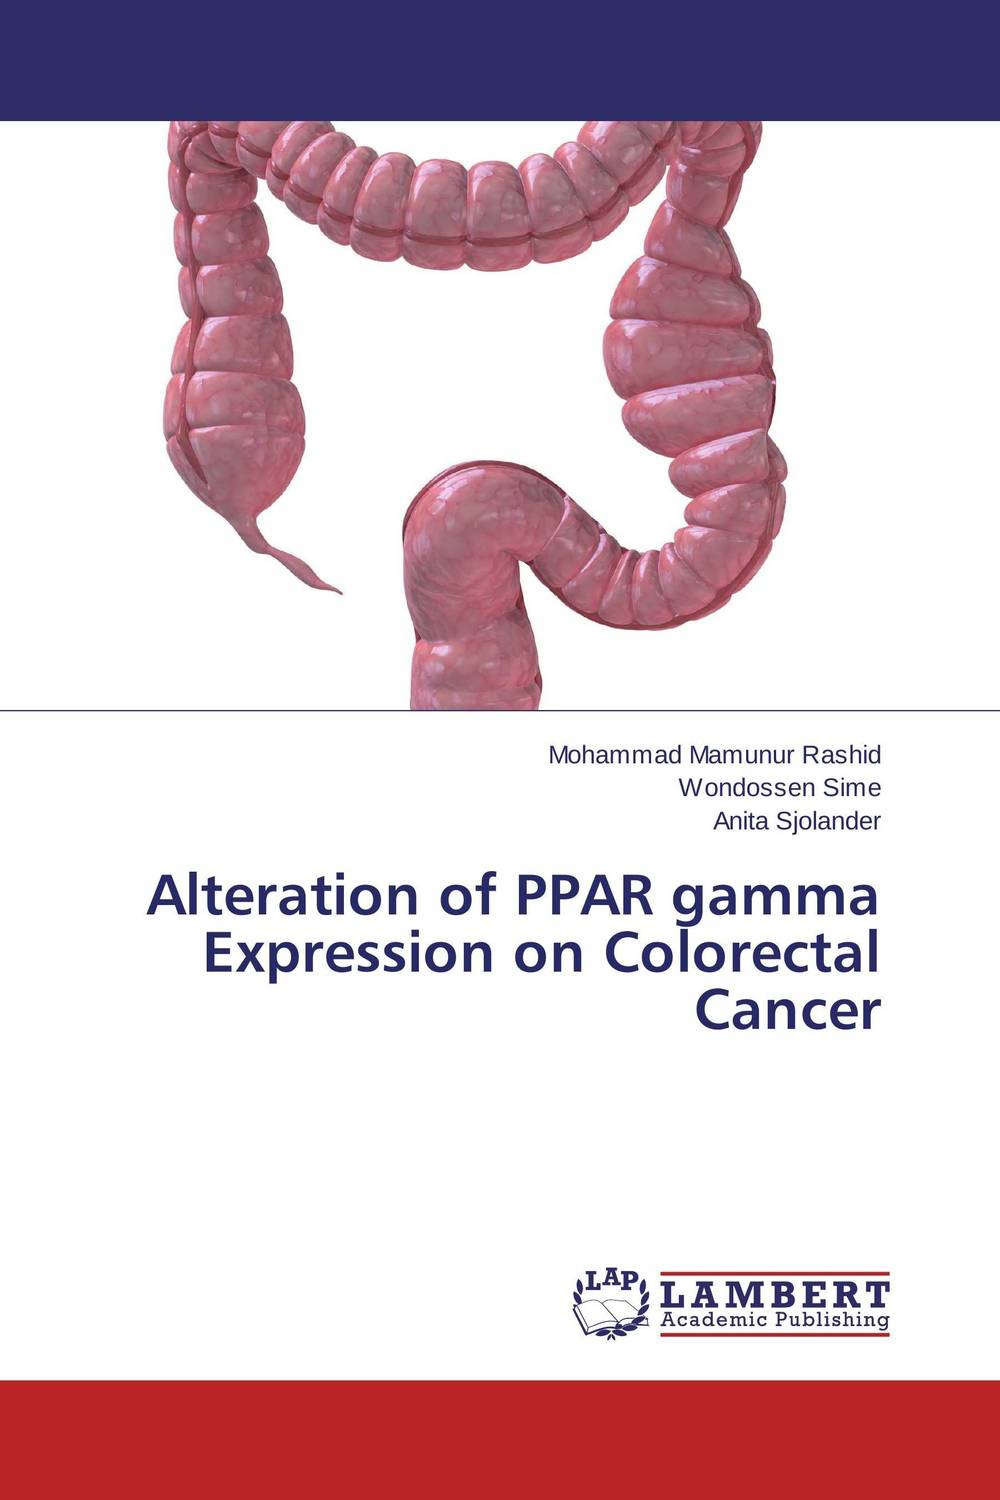 Alteration of PPAR gamma Expression on Colorectal Cancer colorectal cancer